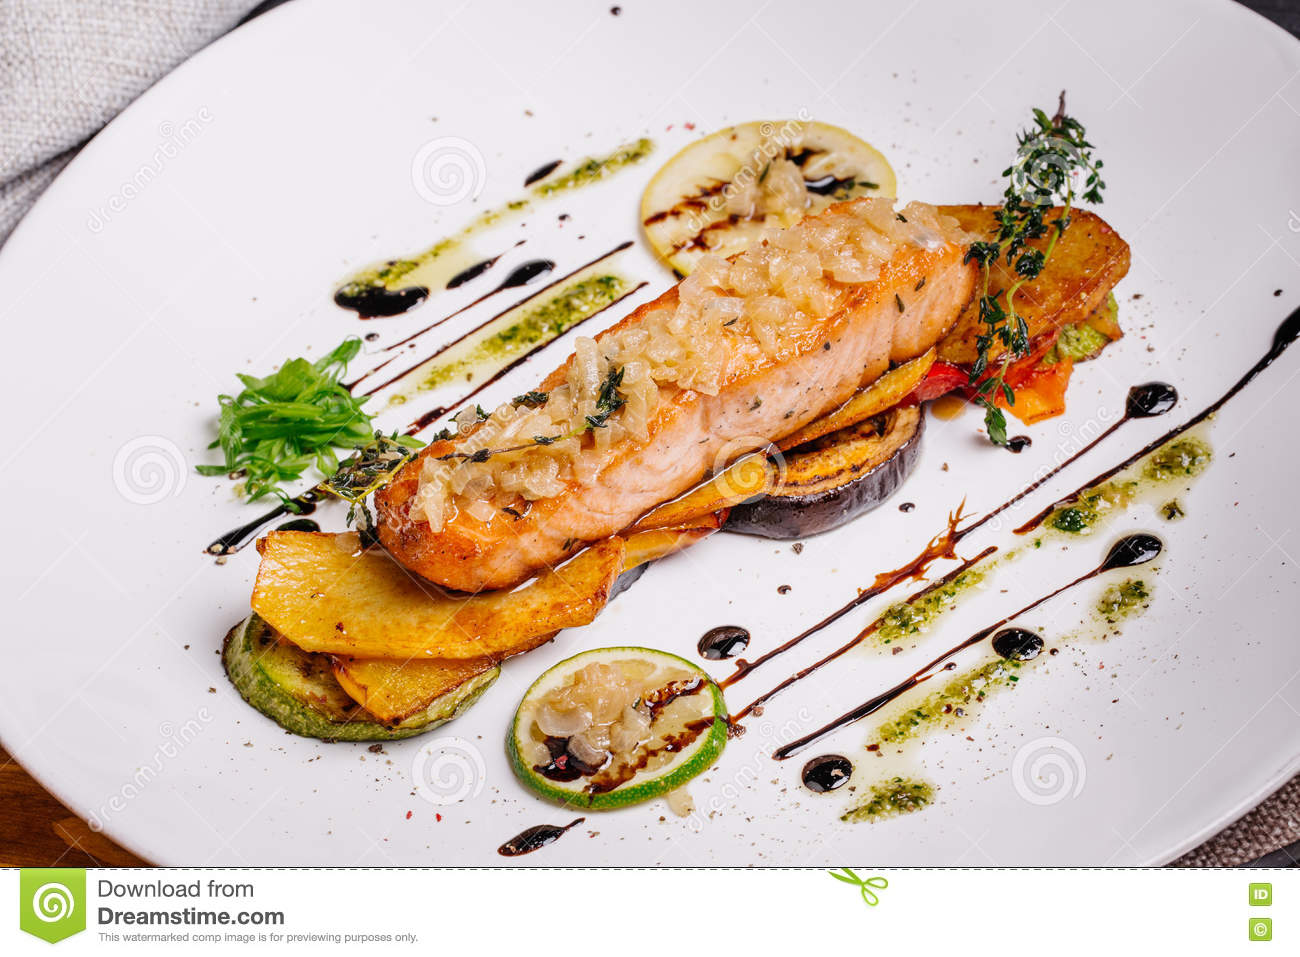 Baked Salmon With Vegetables On Glass Plate Isolated